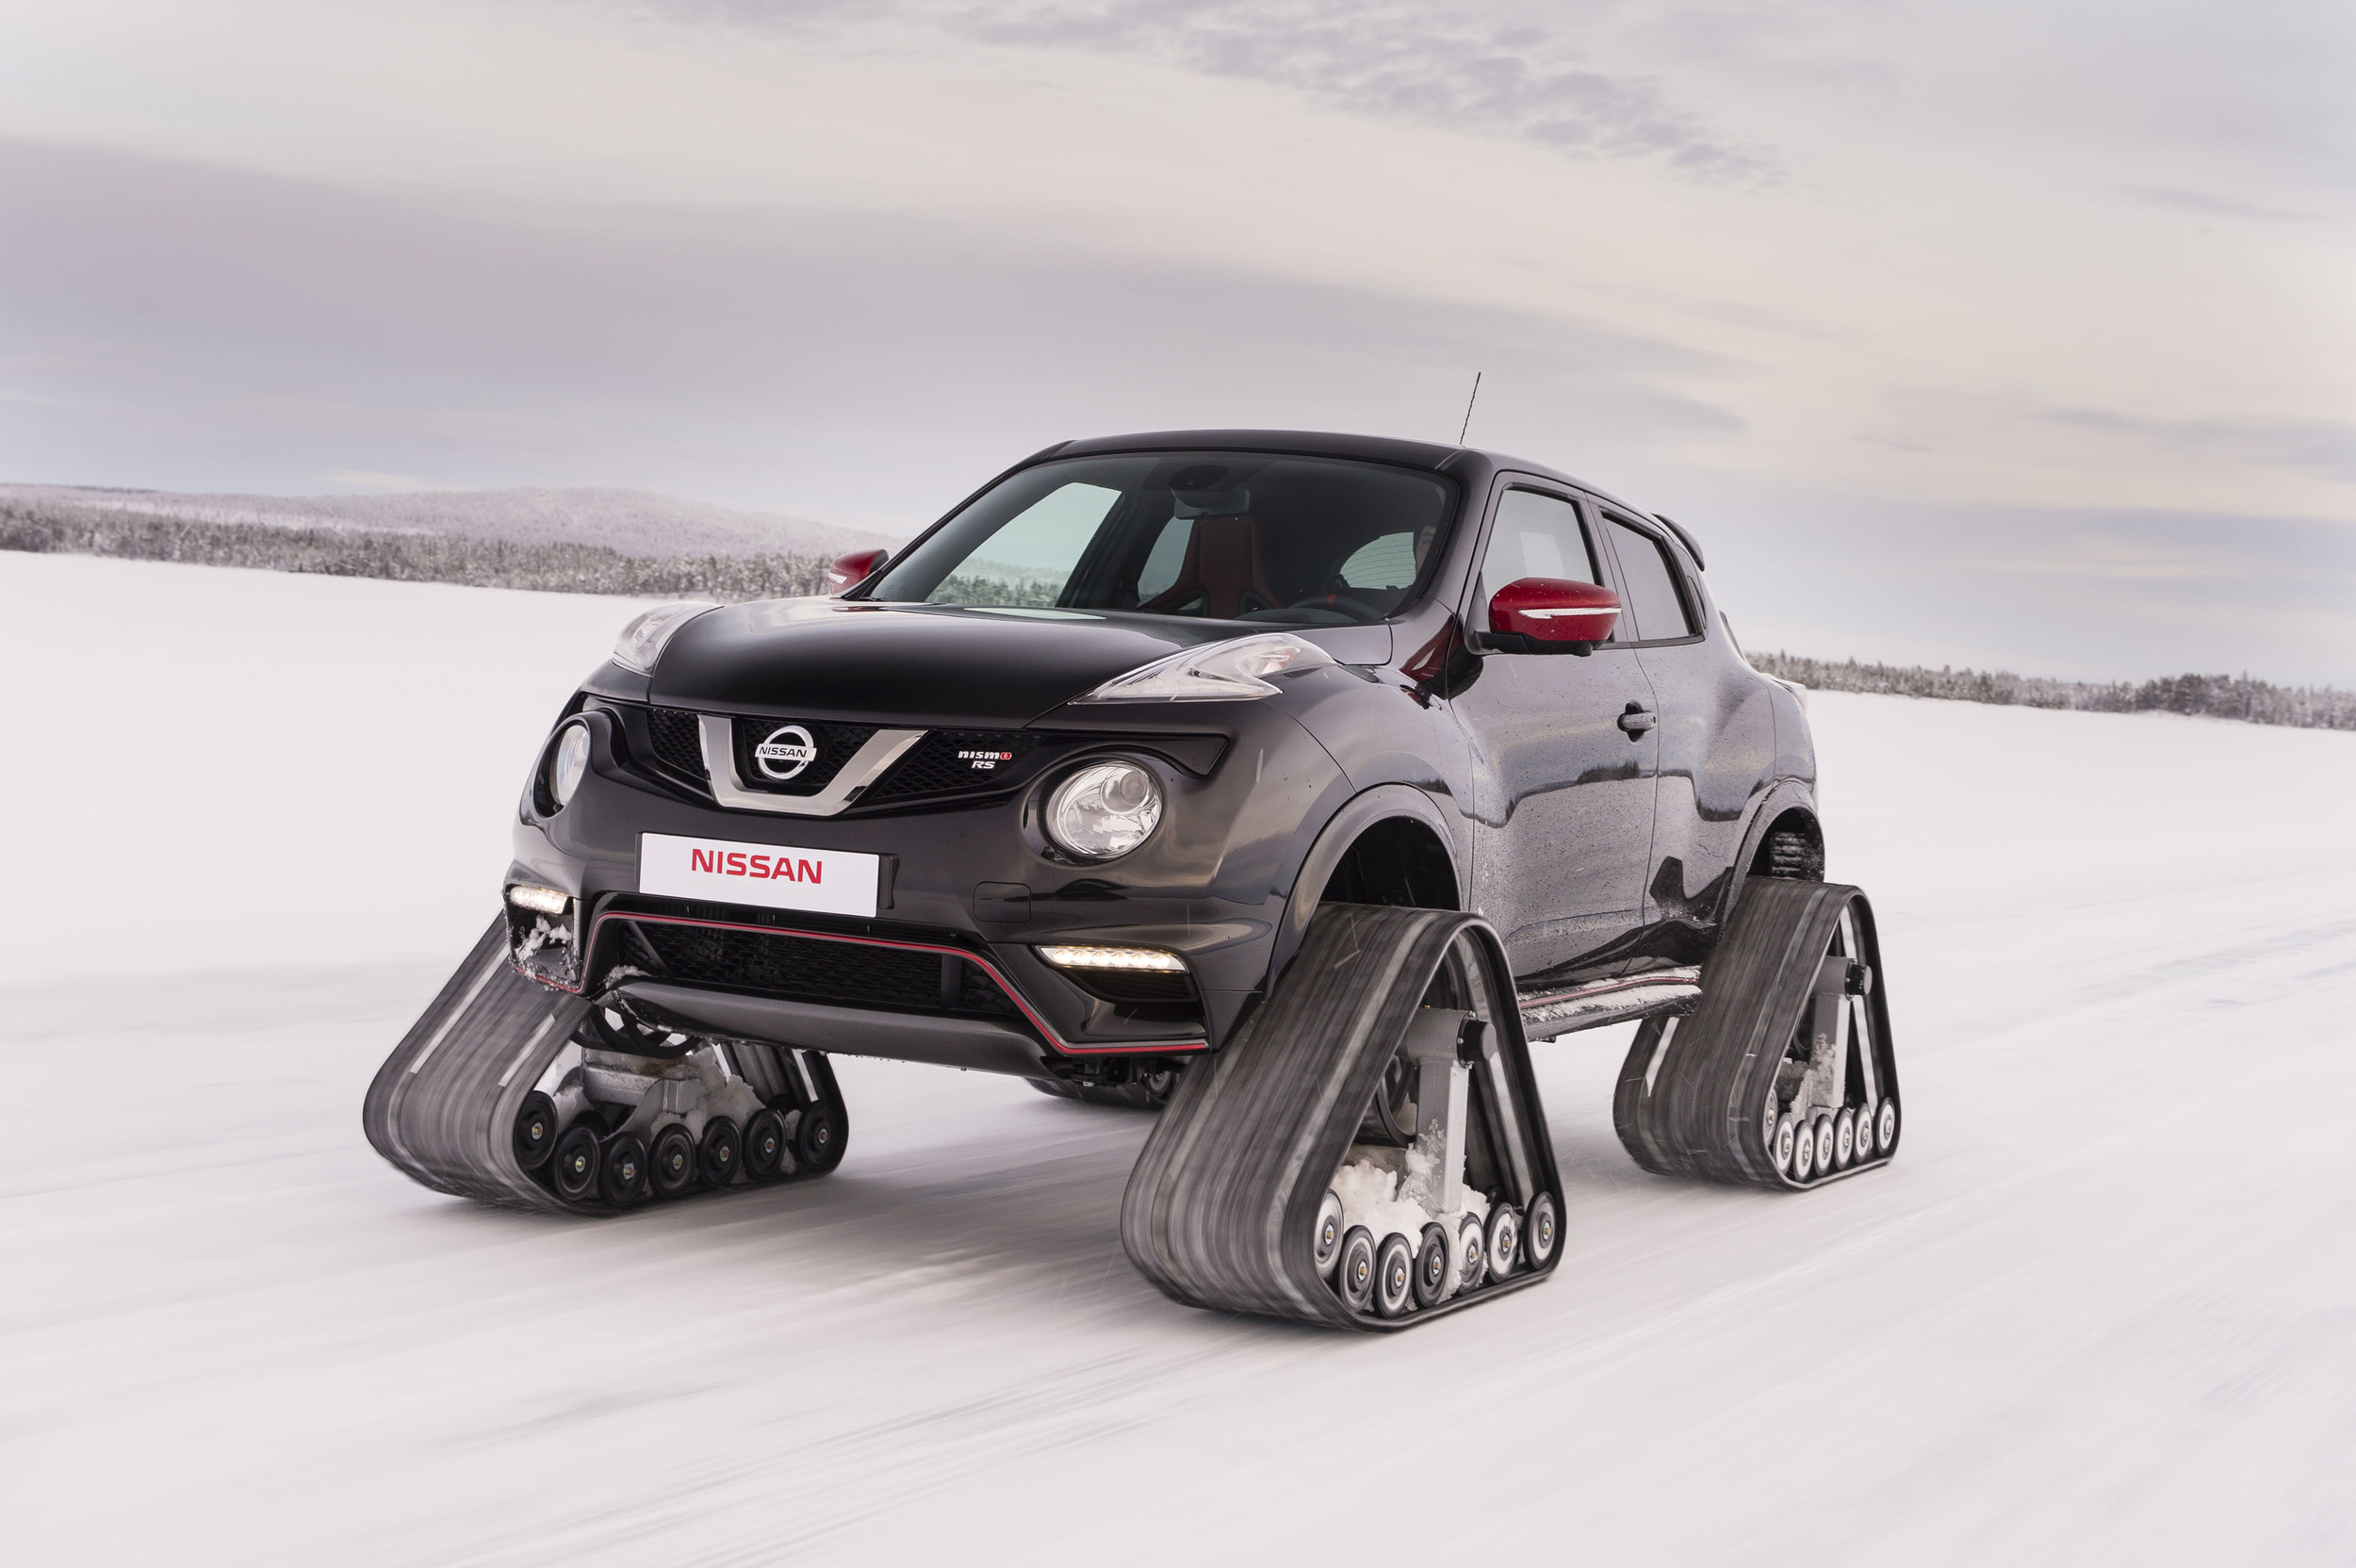 2015 nissan juke nismo rsnow 5 egmcartech. Black Bedroom Furniture Sets. Home Design Ideas